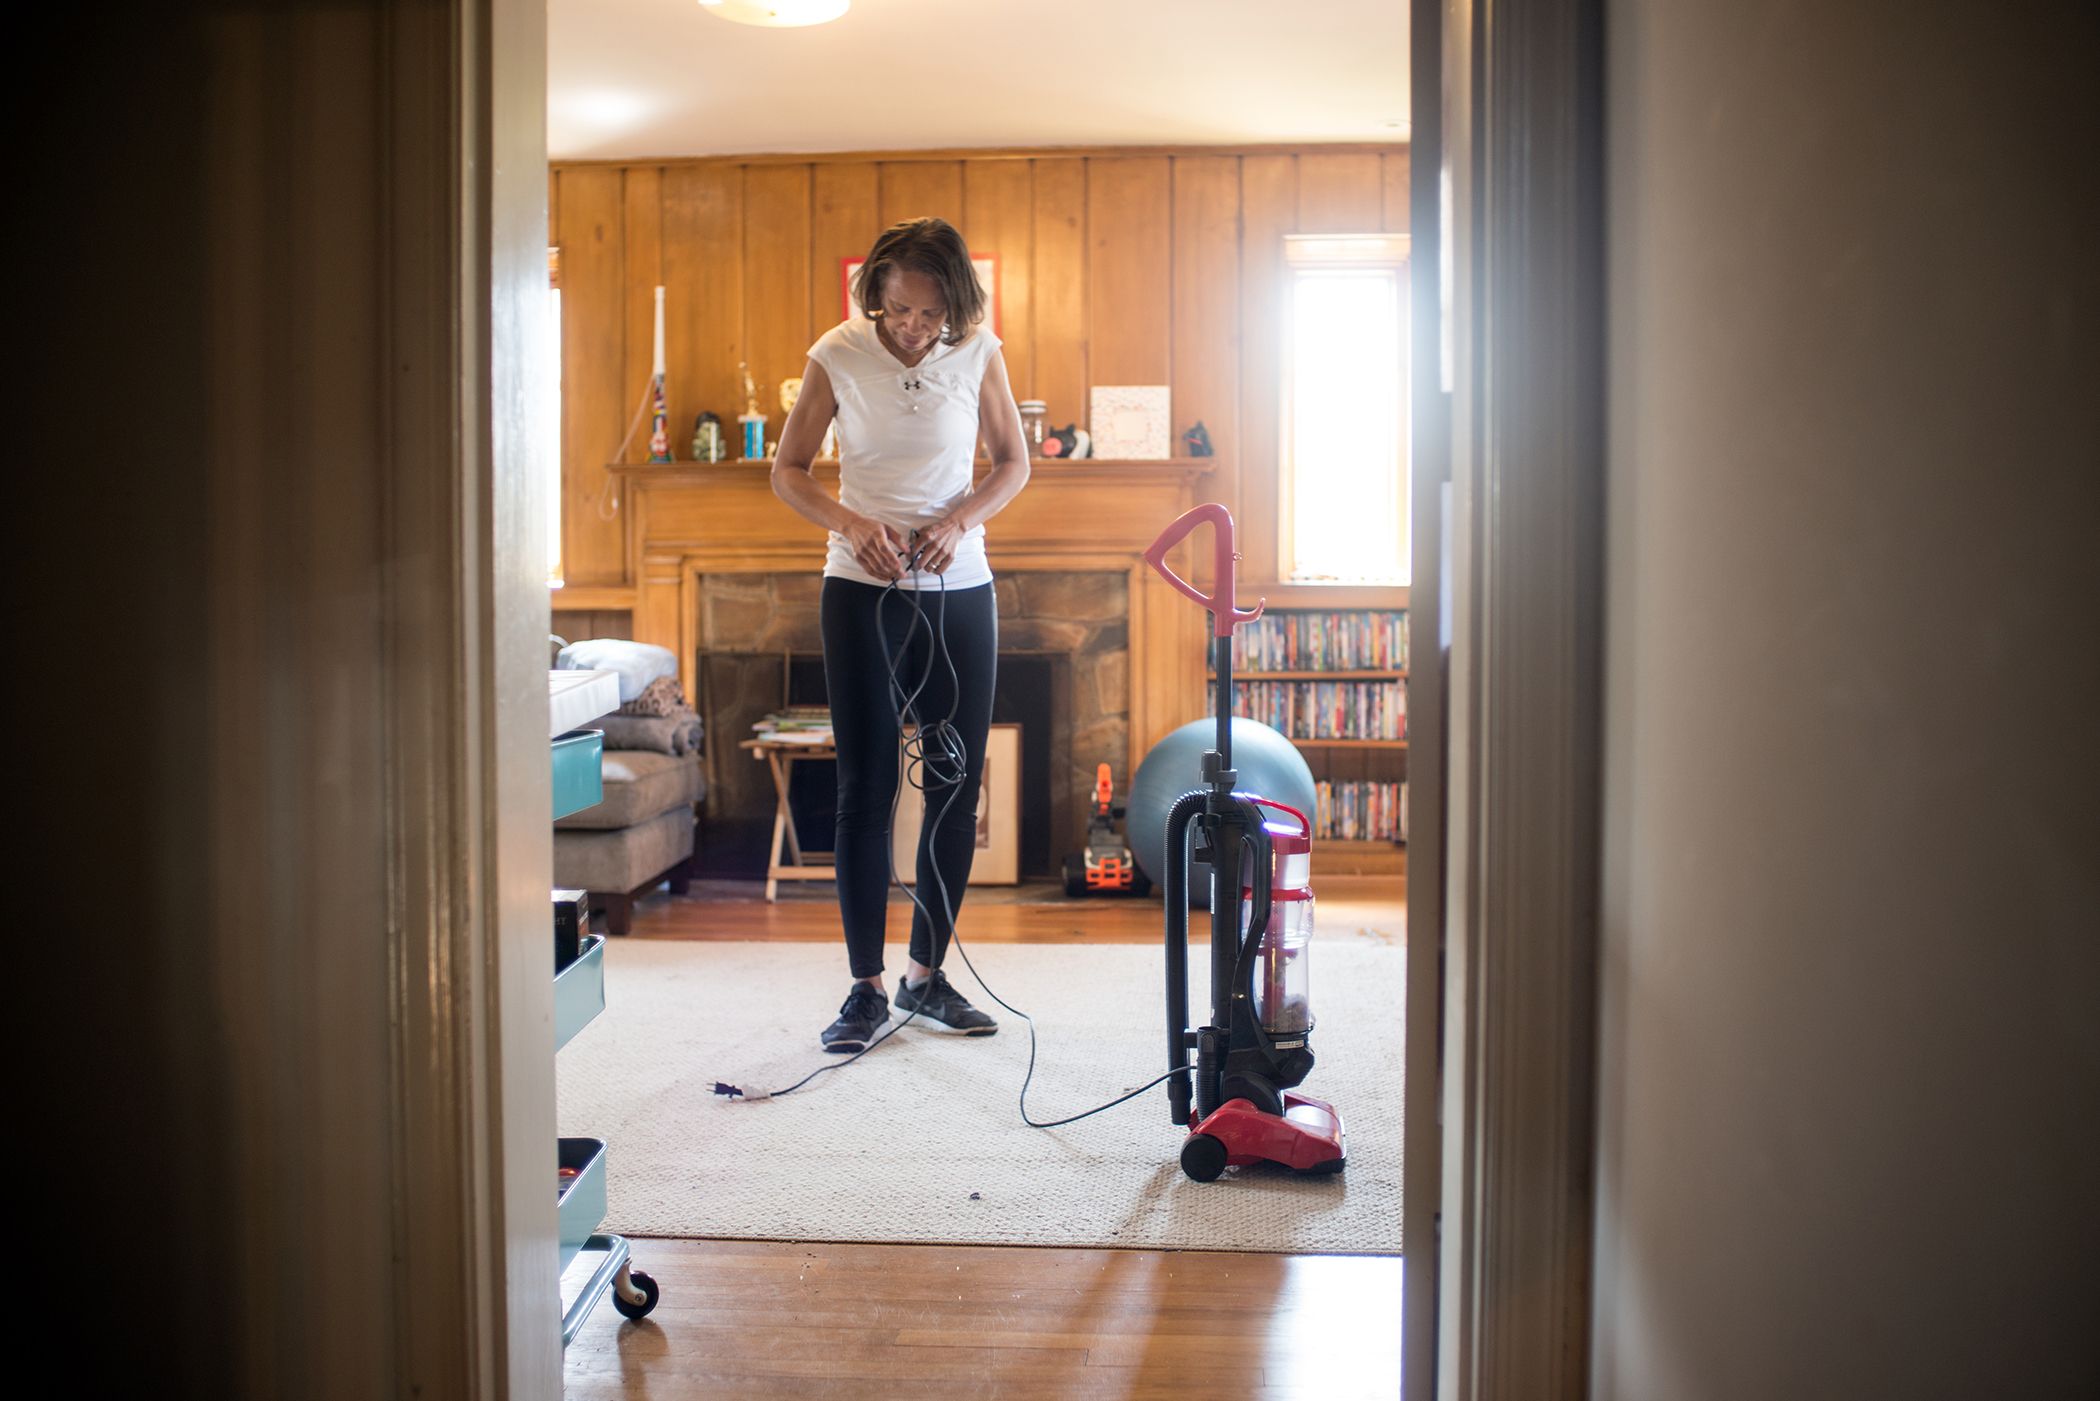 Unemployed lawyer Karen Johnson vacuums her family room while her family is at work and school, April 14, 2017.